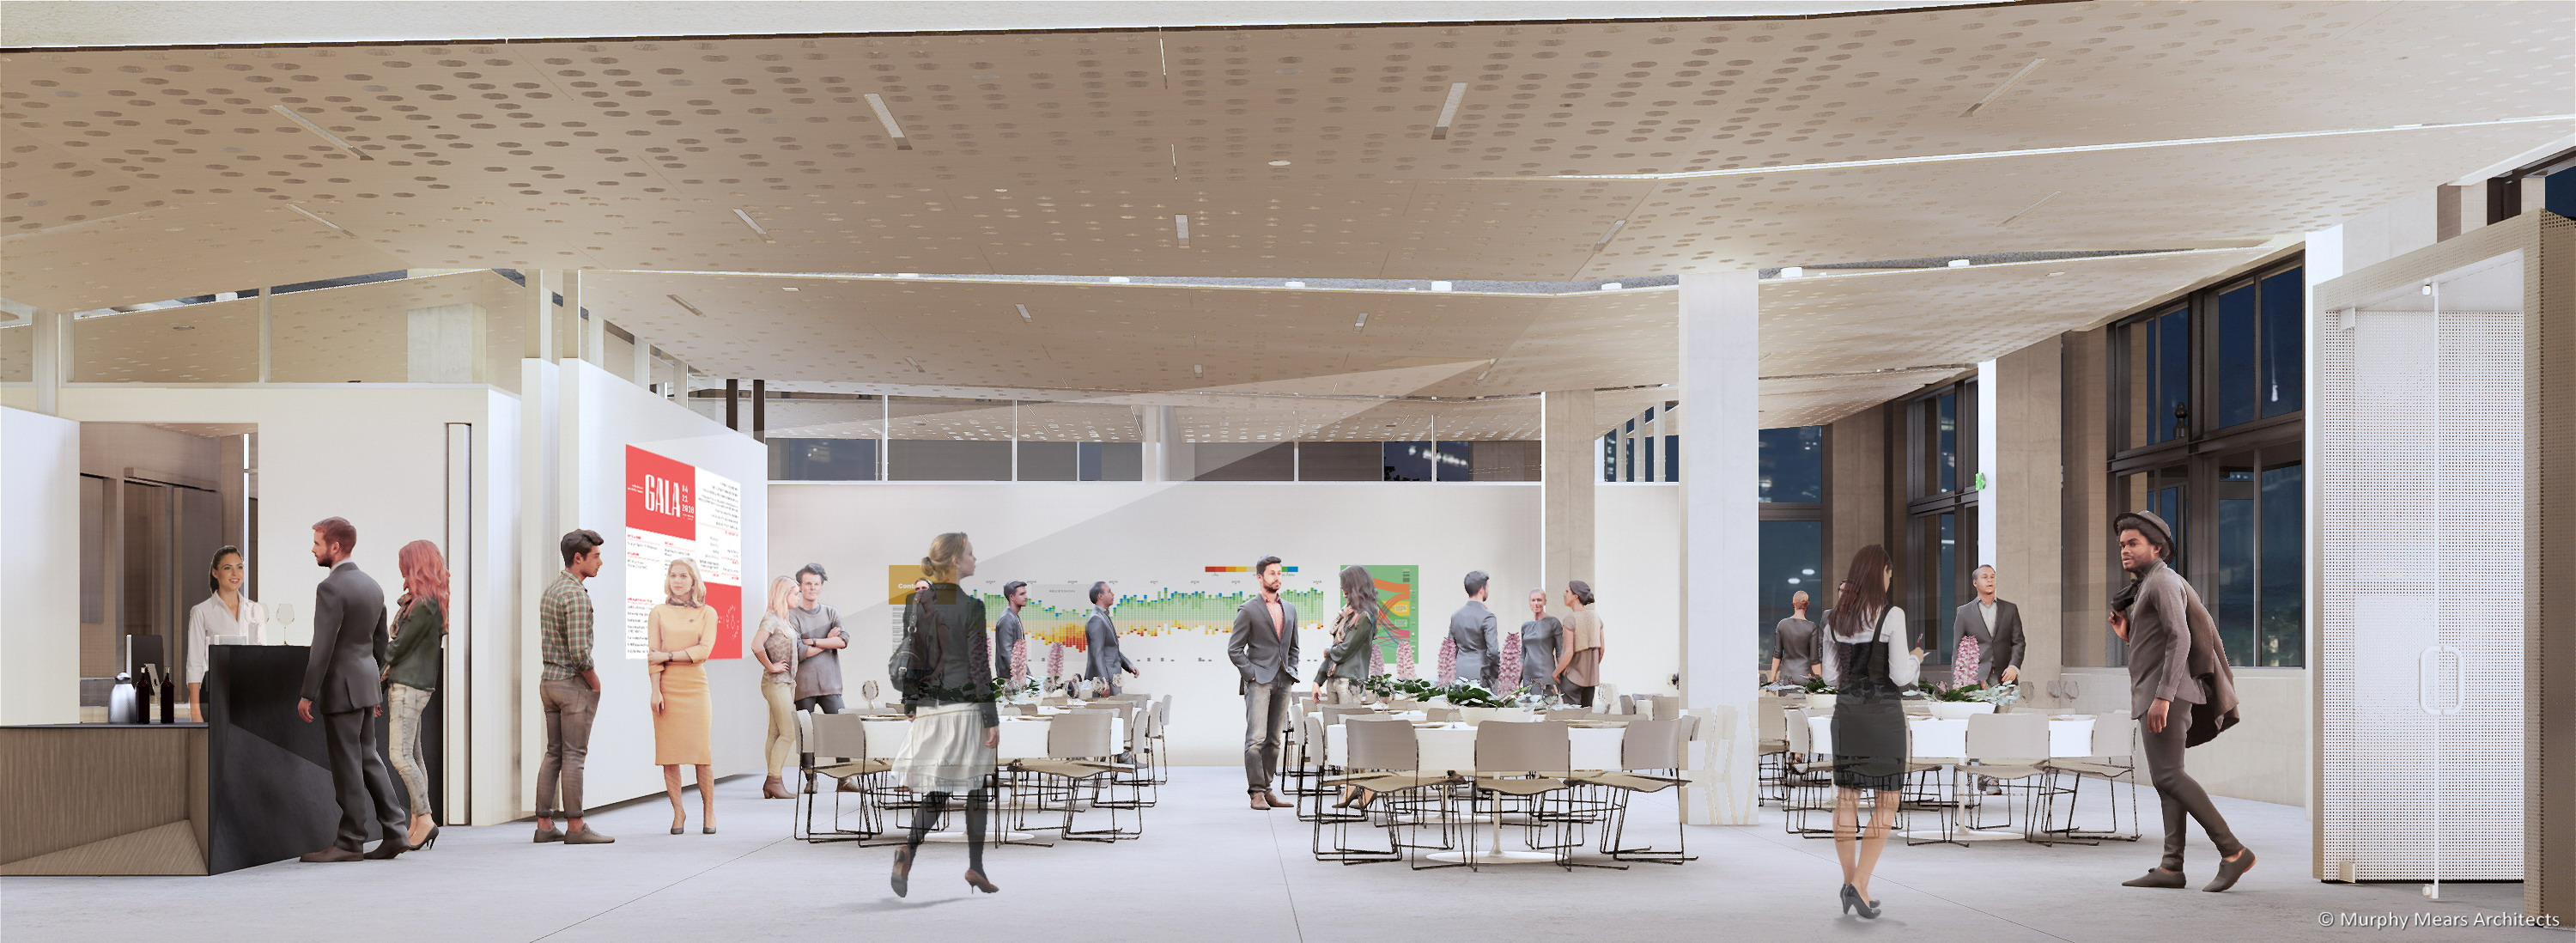 Architecture Center Houston rendering - Street level flexible space with an evening event.